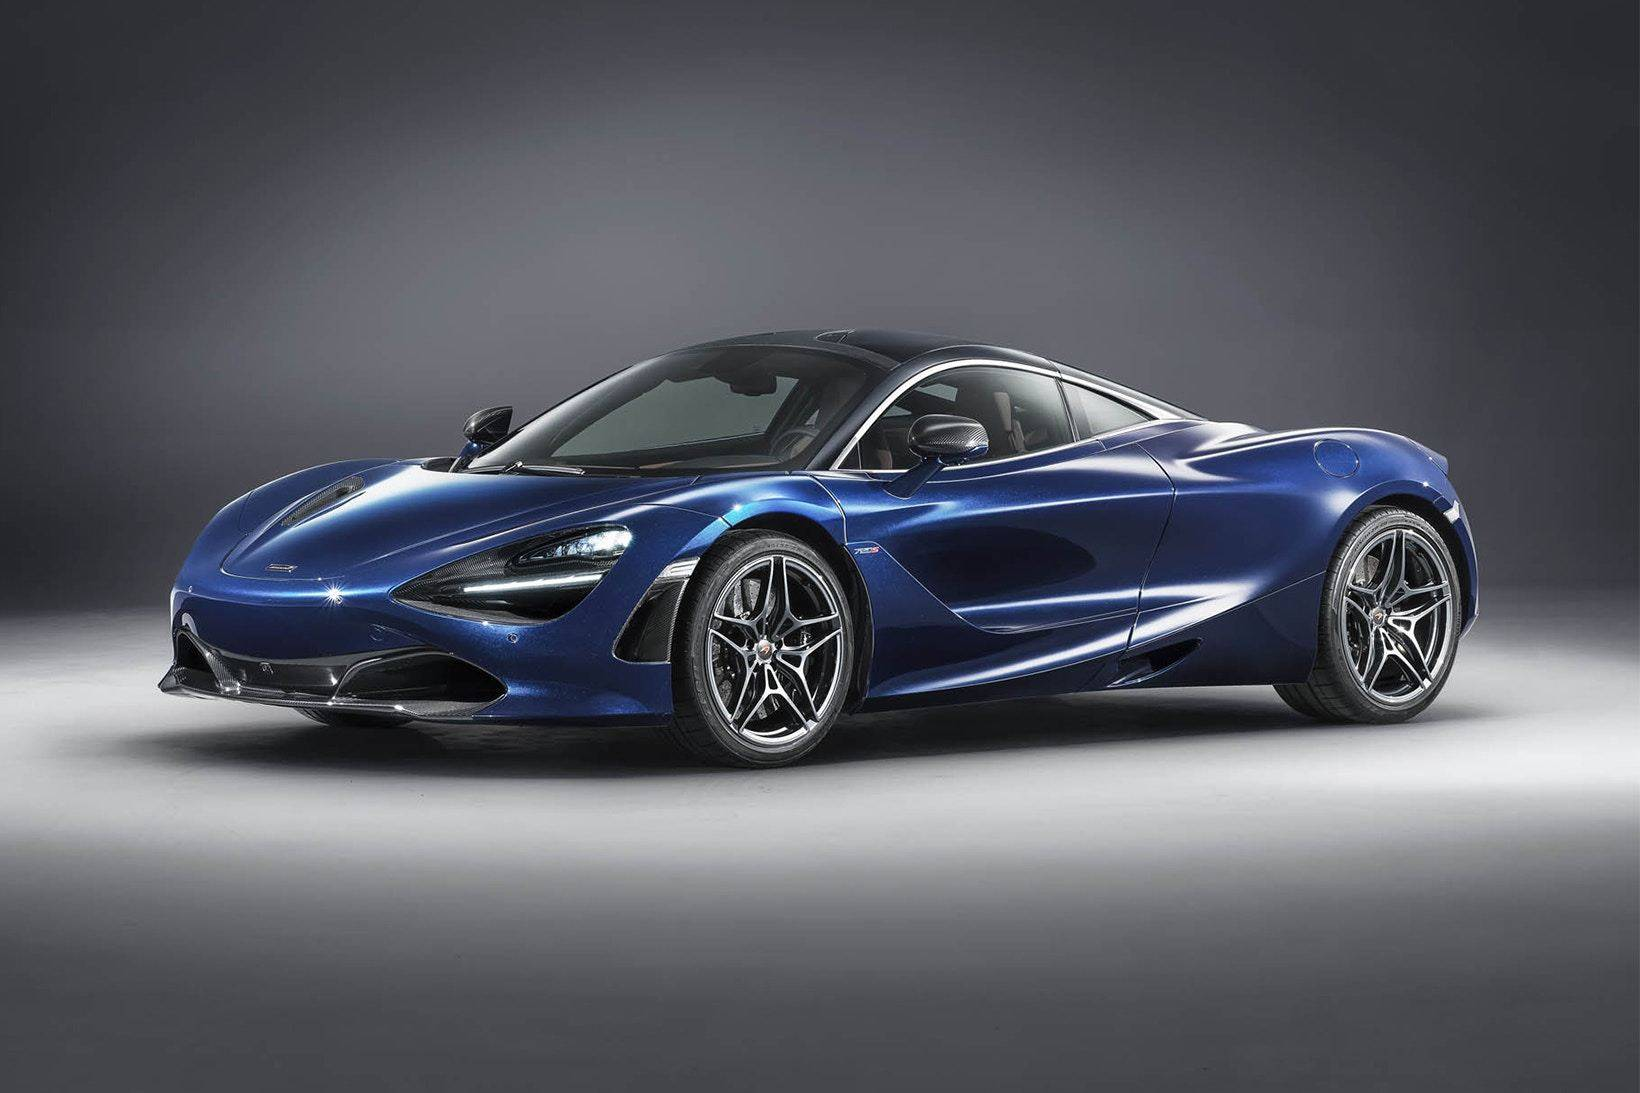 McLaren 720S MSO「Atlantic Blue」特别定制,惊艳登场!